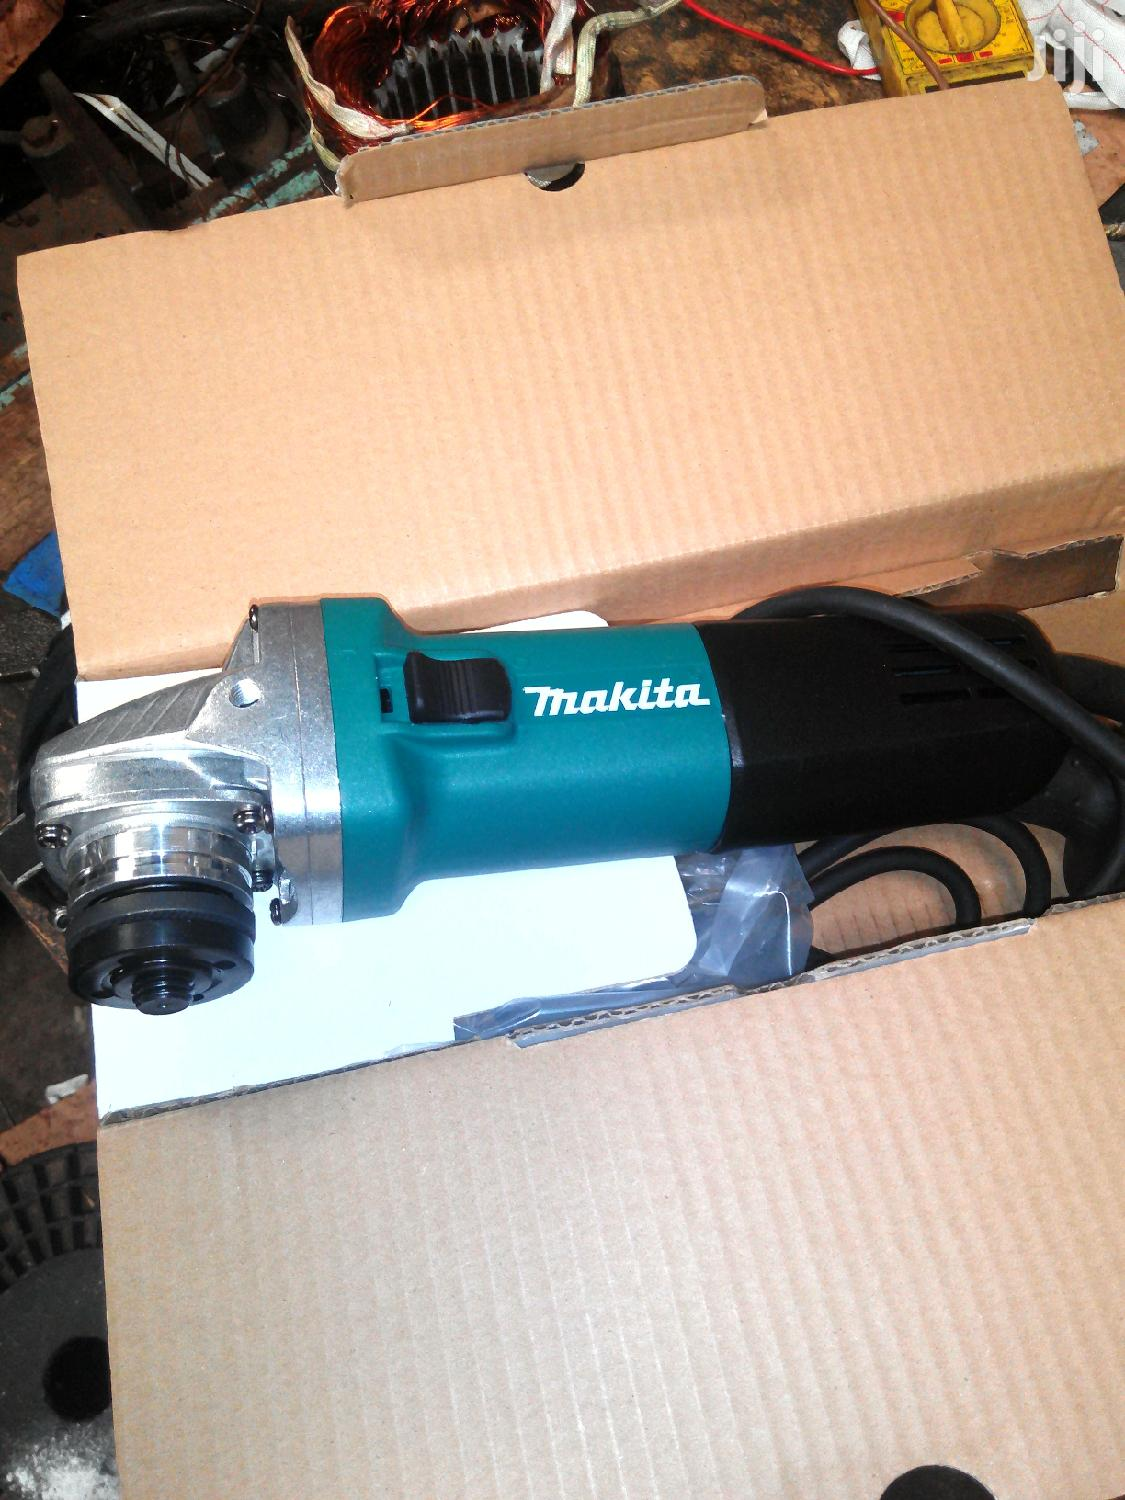 Makita Grinder 4 1/2 Inch ( Medium)